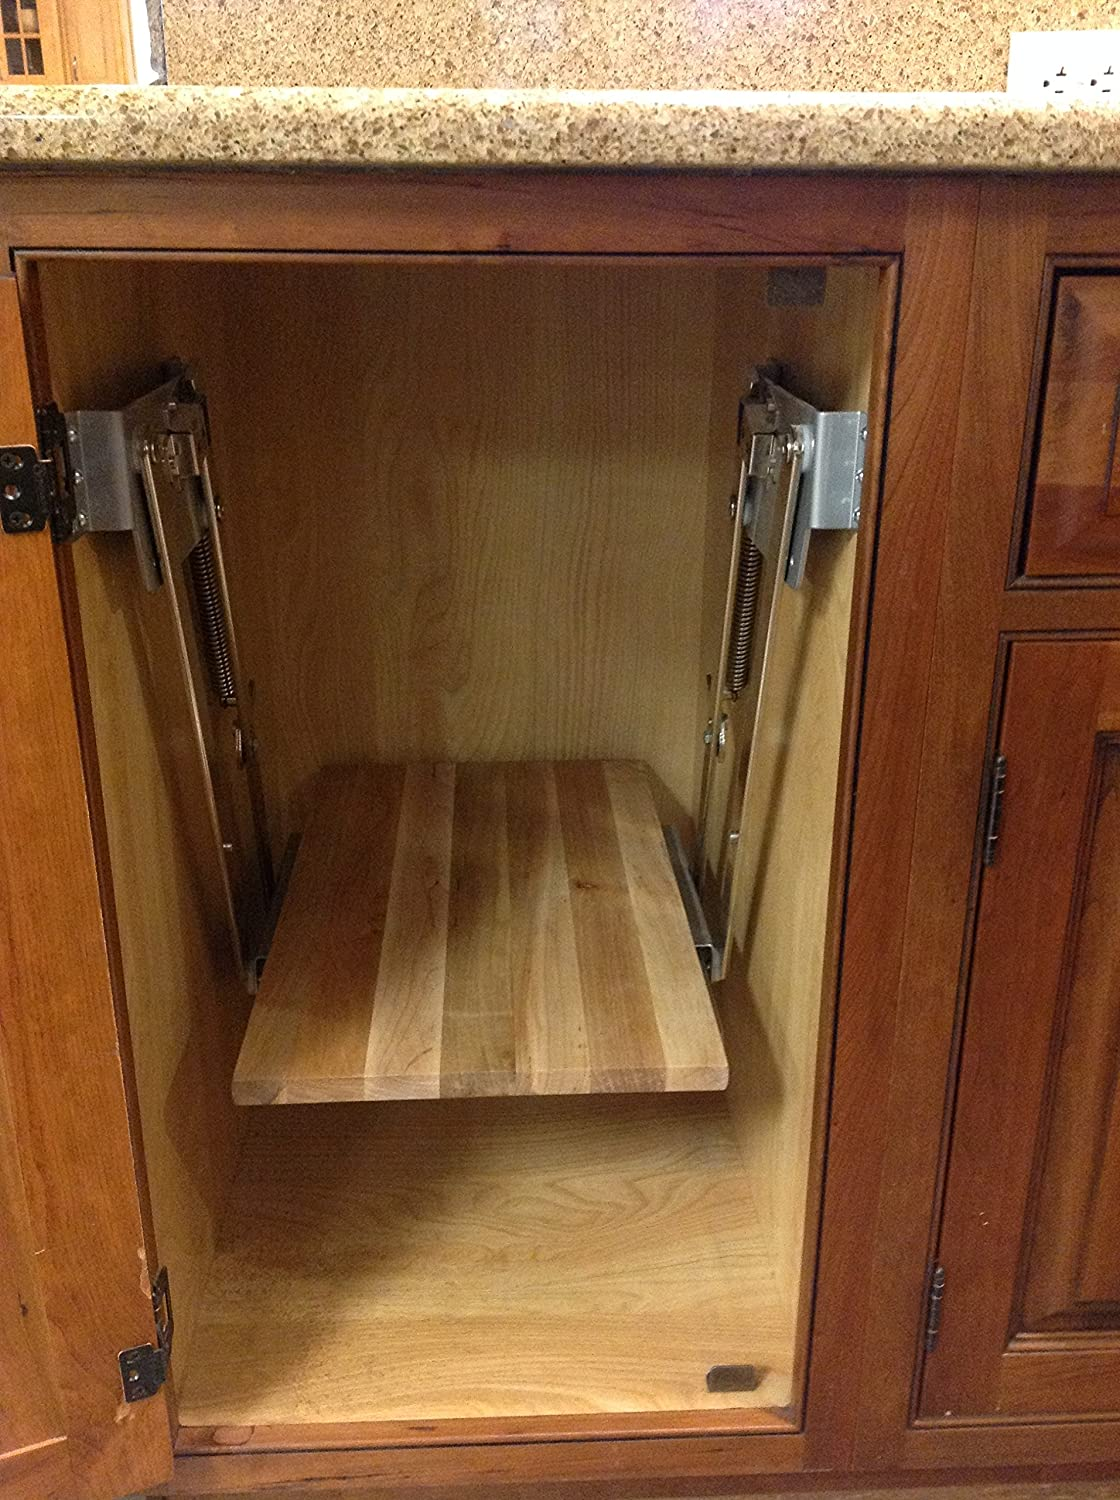 Full Height Base Cabinet Heavy Duty Mixer Lift Rev-A-Shelf RAS-ML-HDCR Trimmable BUNDLE OF 2 ITEMS includes a 3//4 x 15 x 19 Shelf Platform for 21 width Base Cabinet Maple Butcher Block